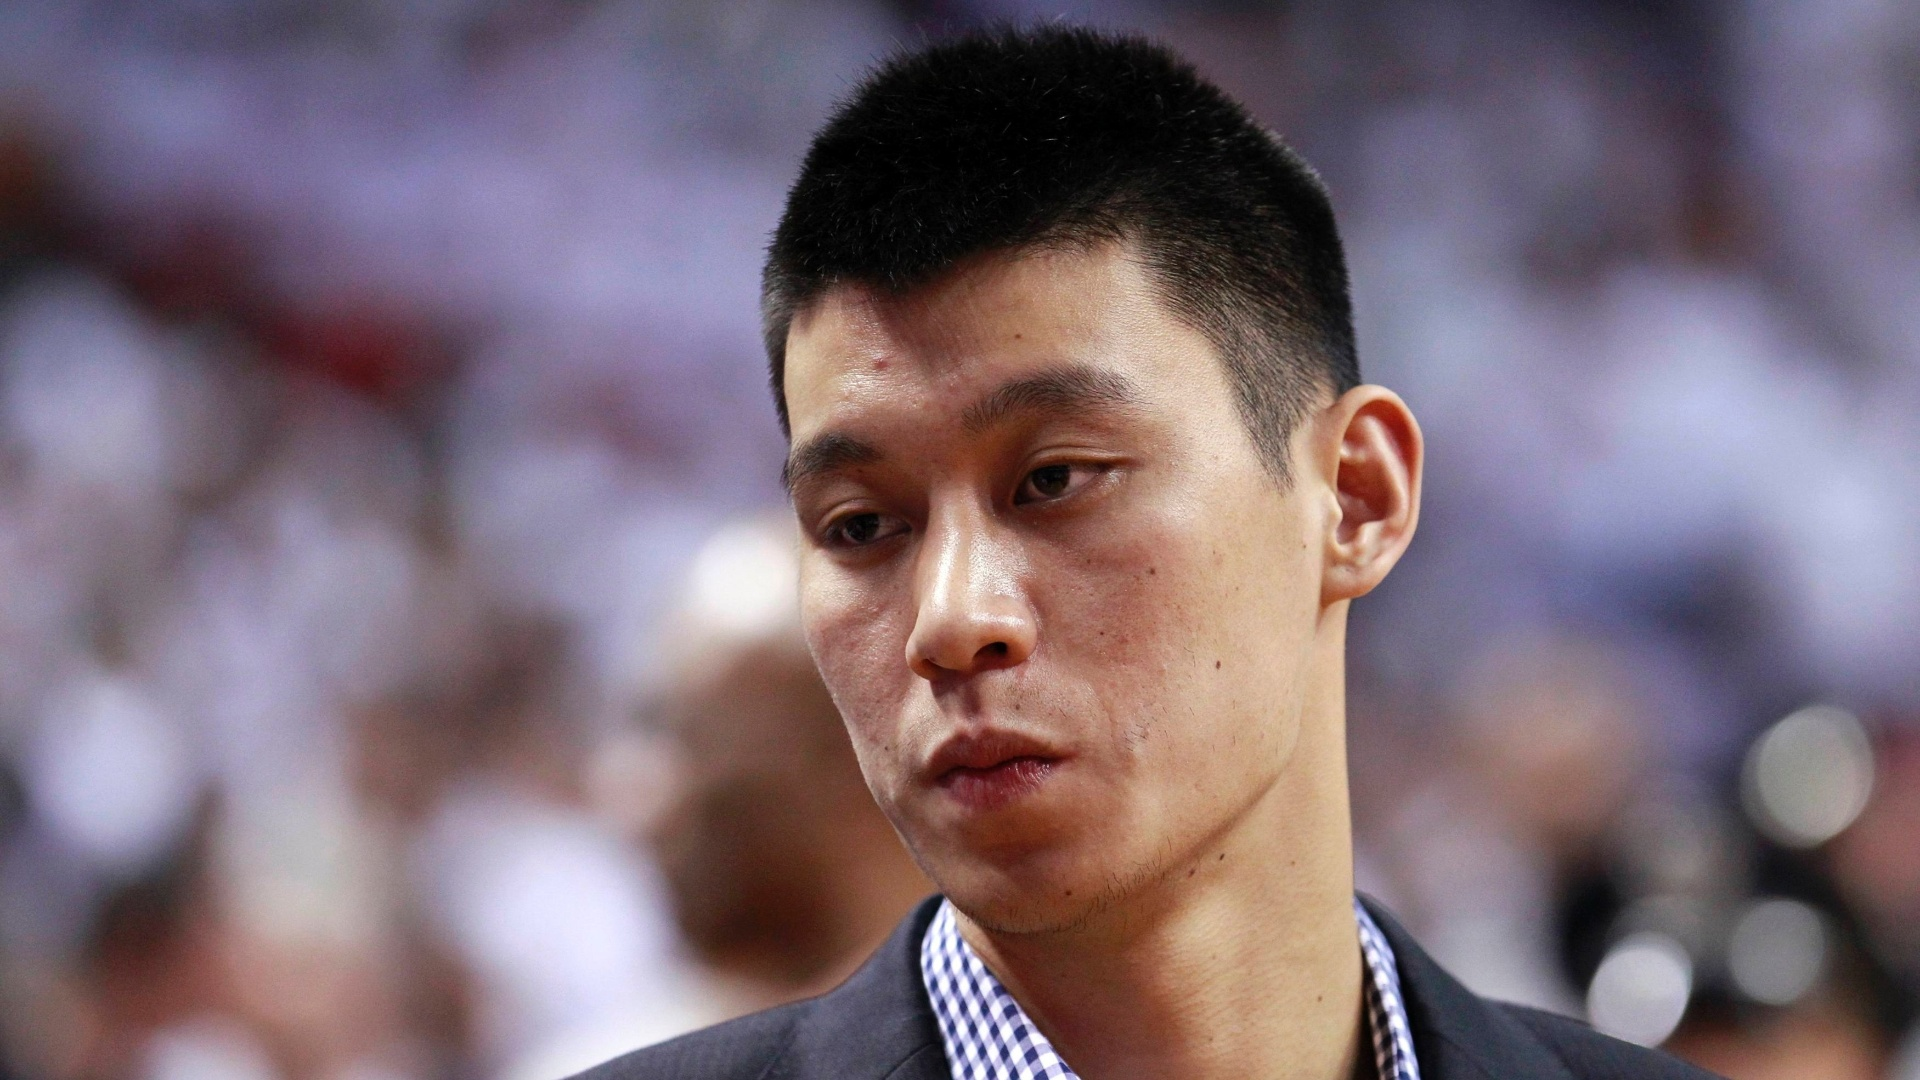 Machucado, Jeremy Lin foi ver o New York Knicks enfrentar o Miami Heat